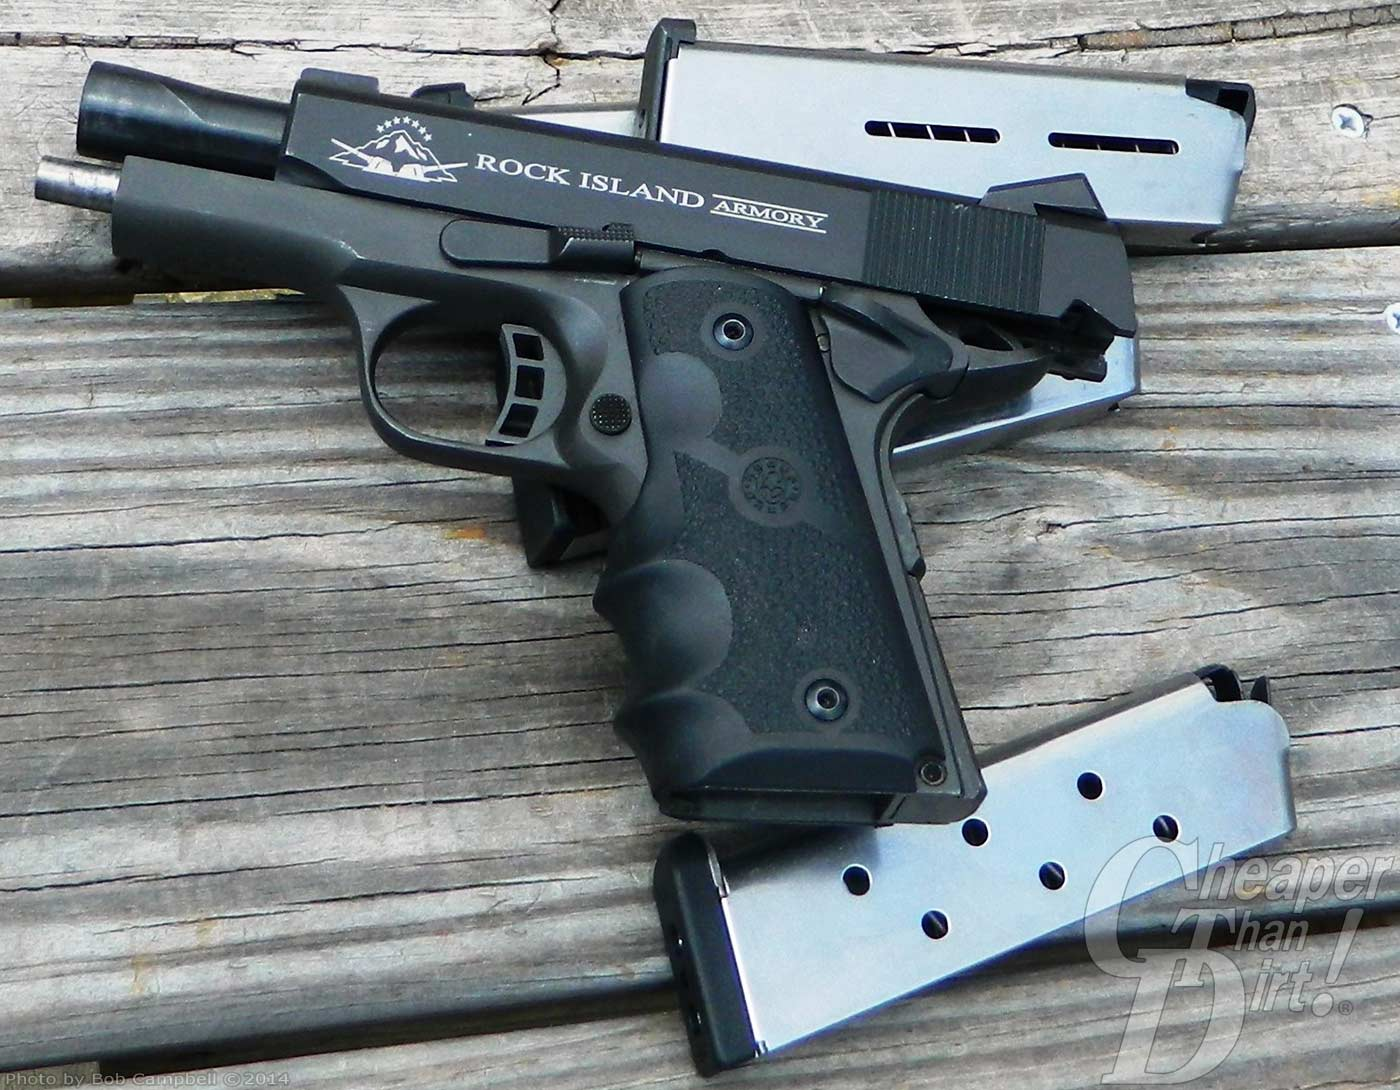 Rock Island Tactical Compact - The Shooter's Log